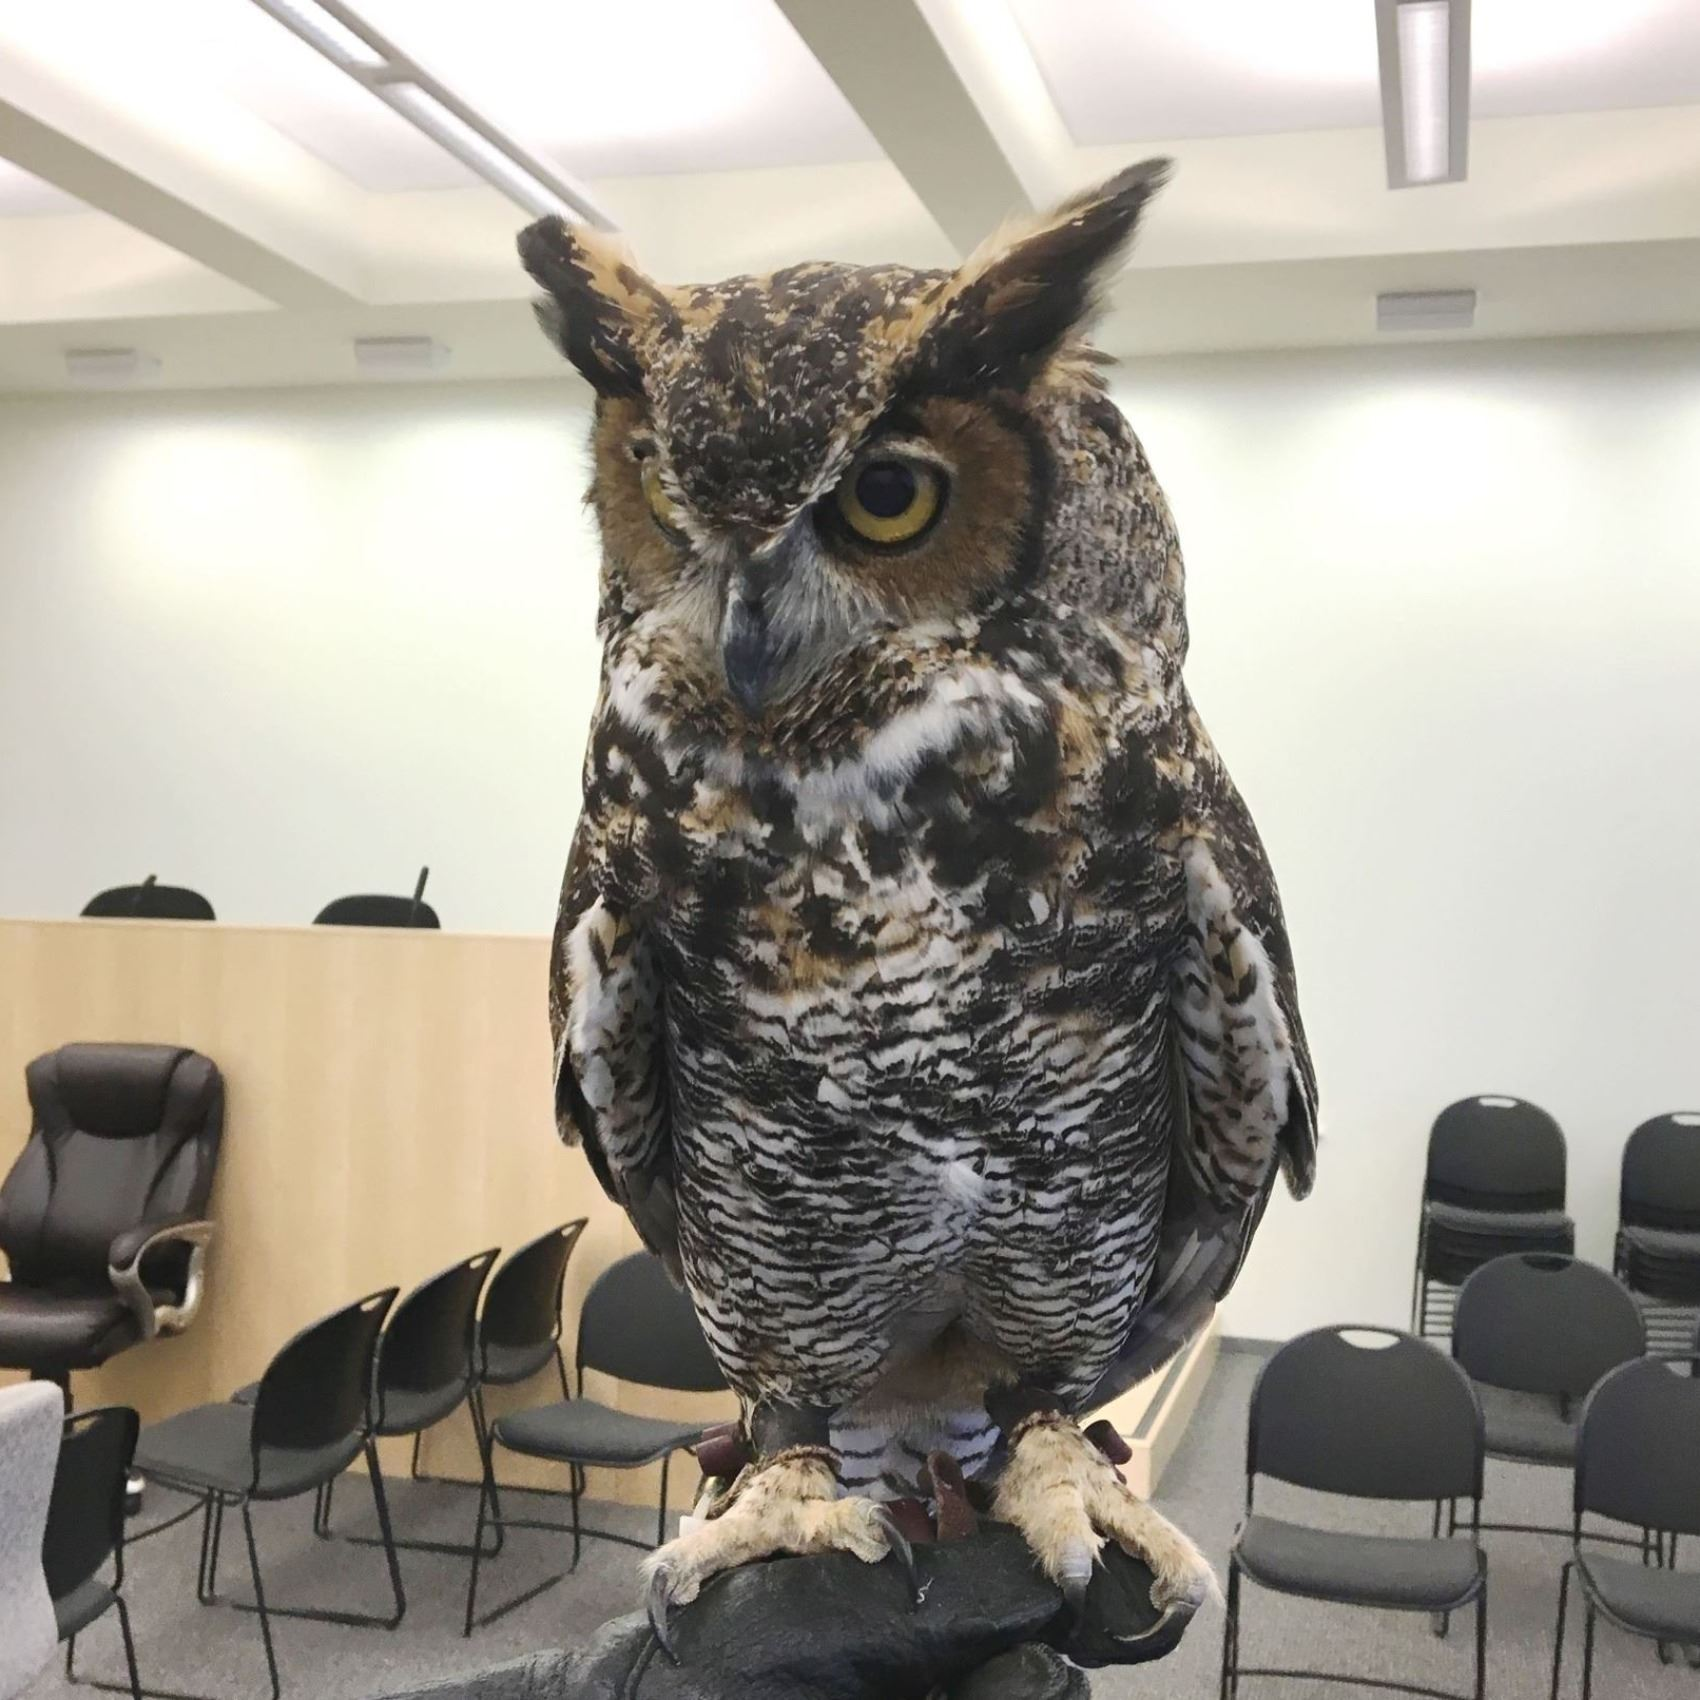 Owl in a classroom